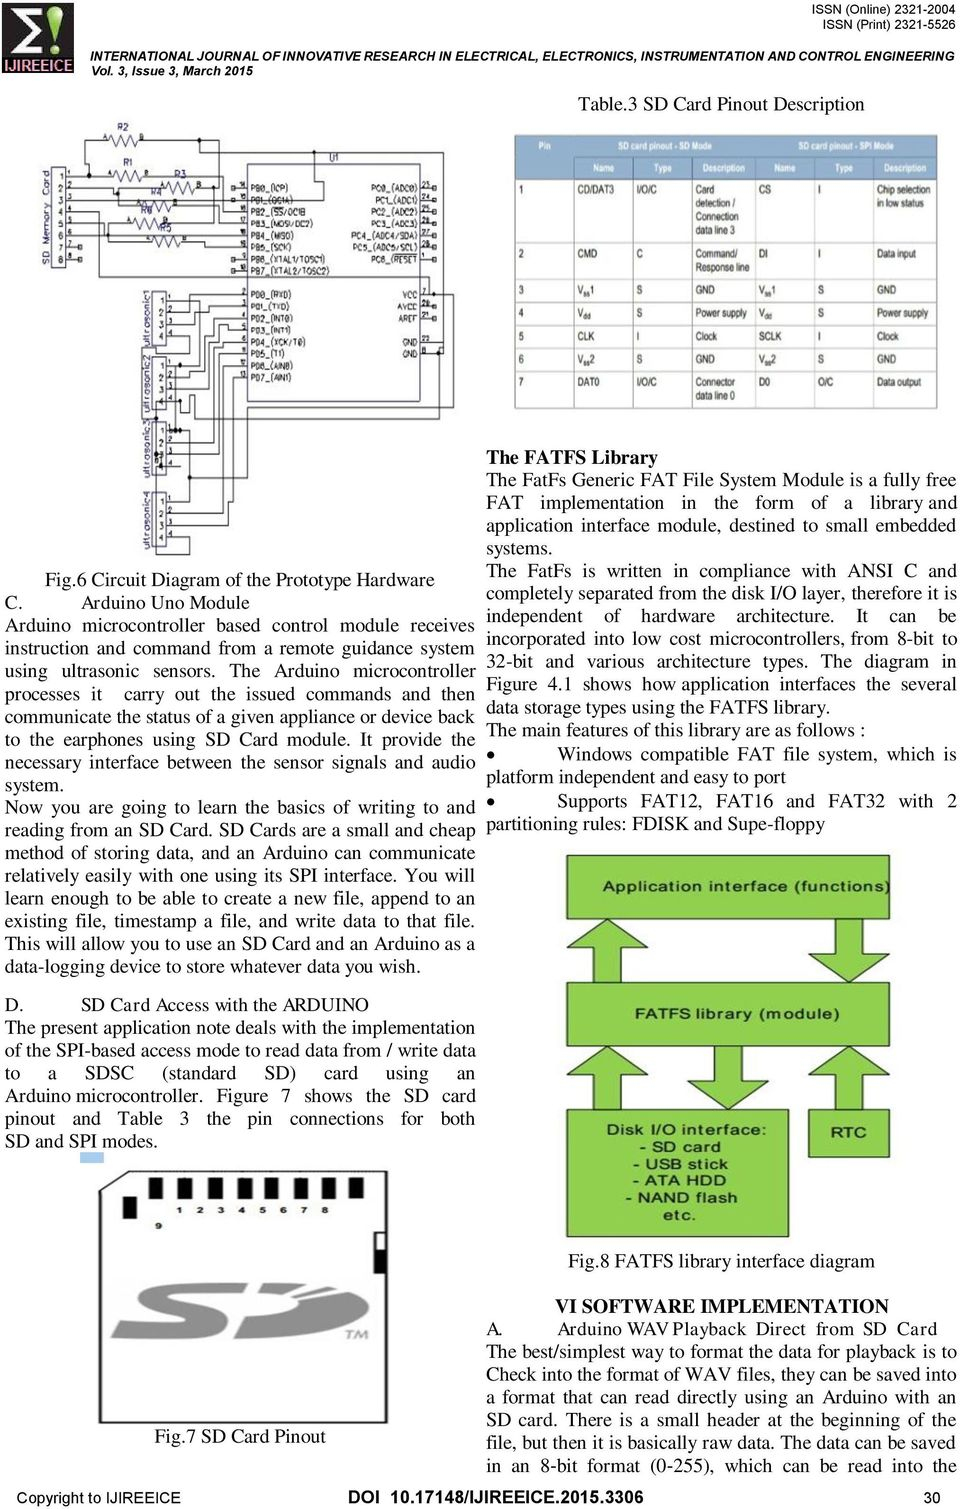 Design and Development of Virtual Eye for the Blind - PDF